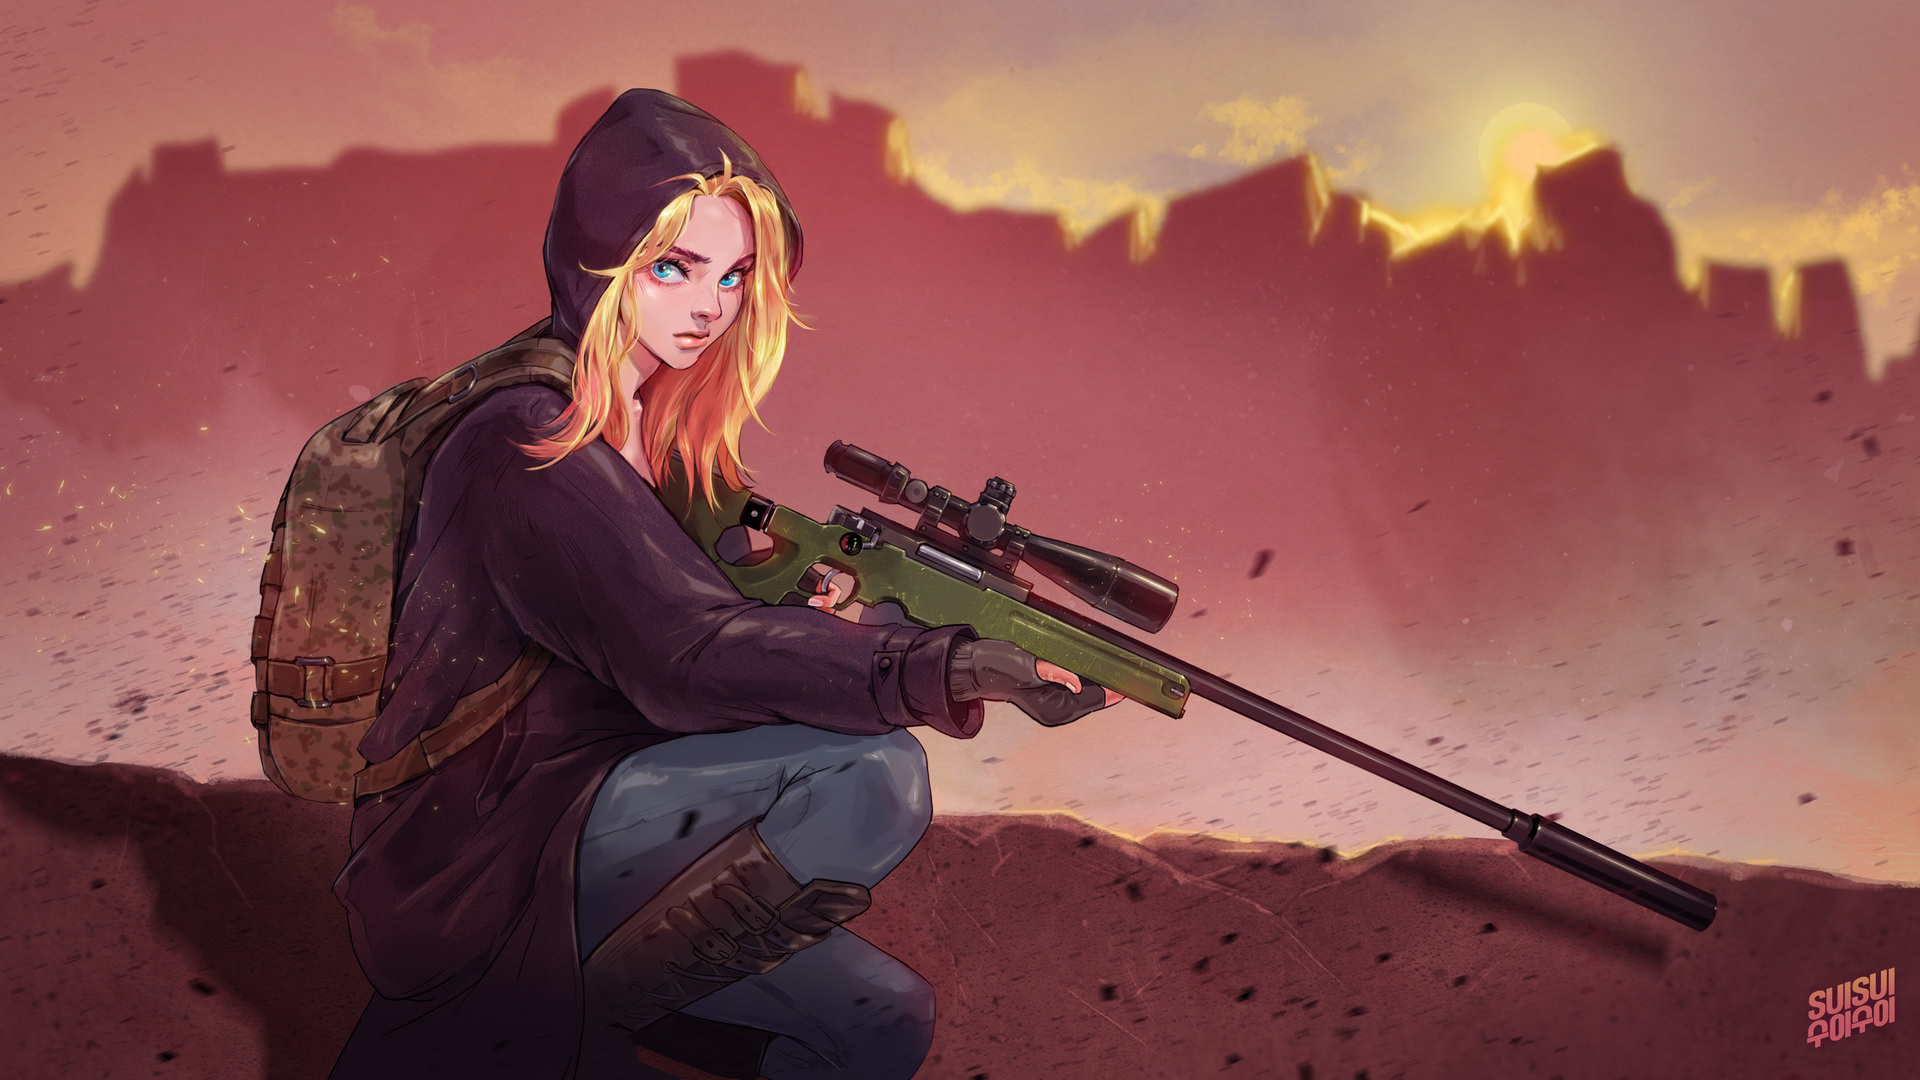 pubg wallpaper 1920x1080: 1920x1080 Pubg Game Girl Fanart Laptop Full HD 1080P HD 4k